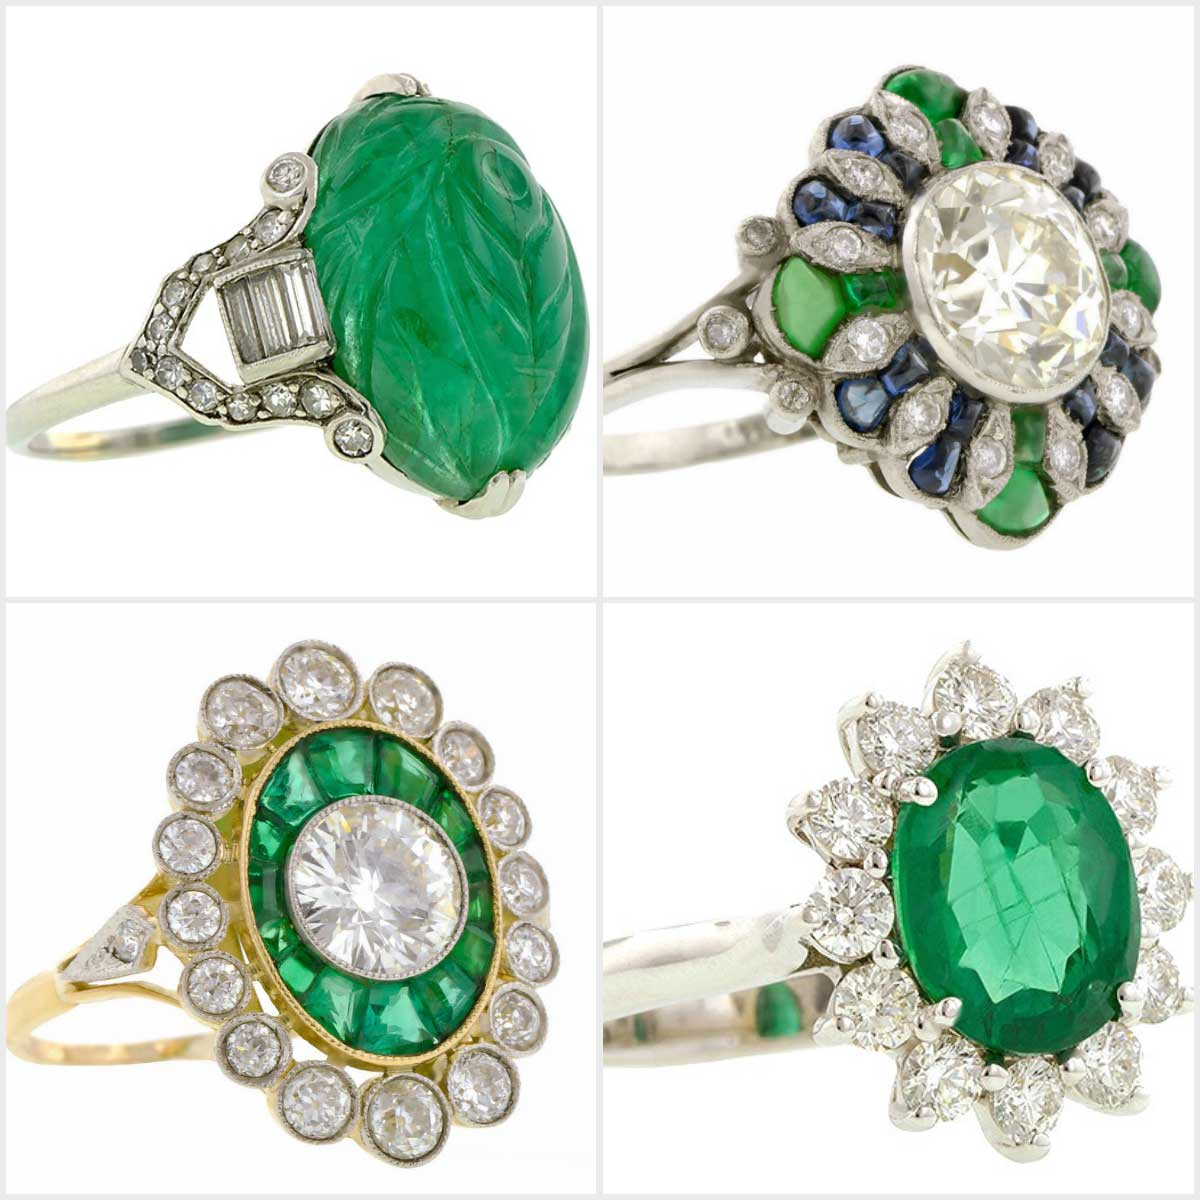 Doyle & Doyle vintage diamond and emerald rings